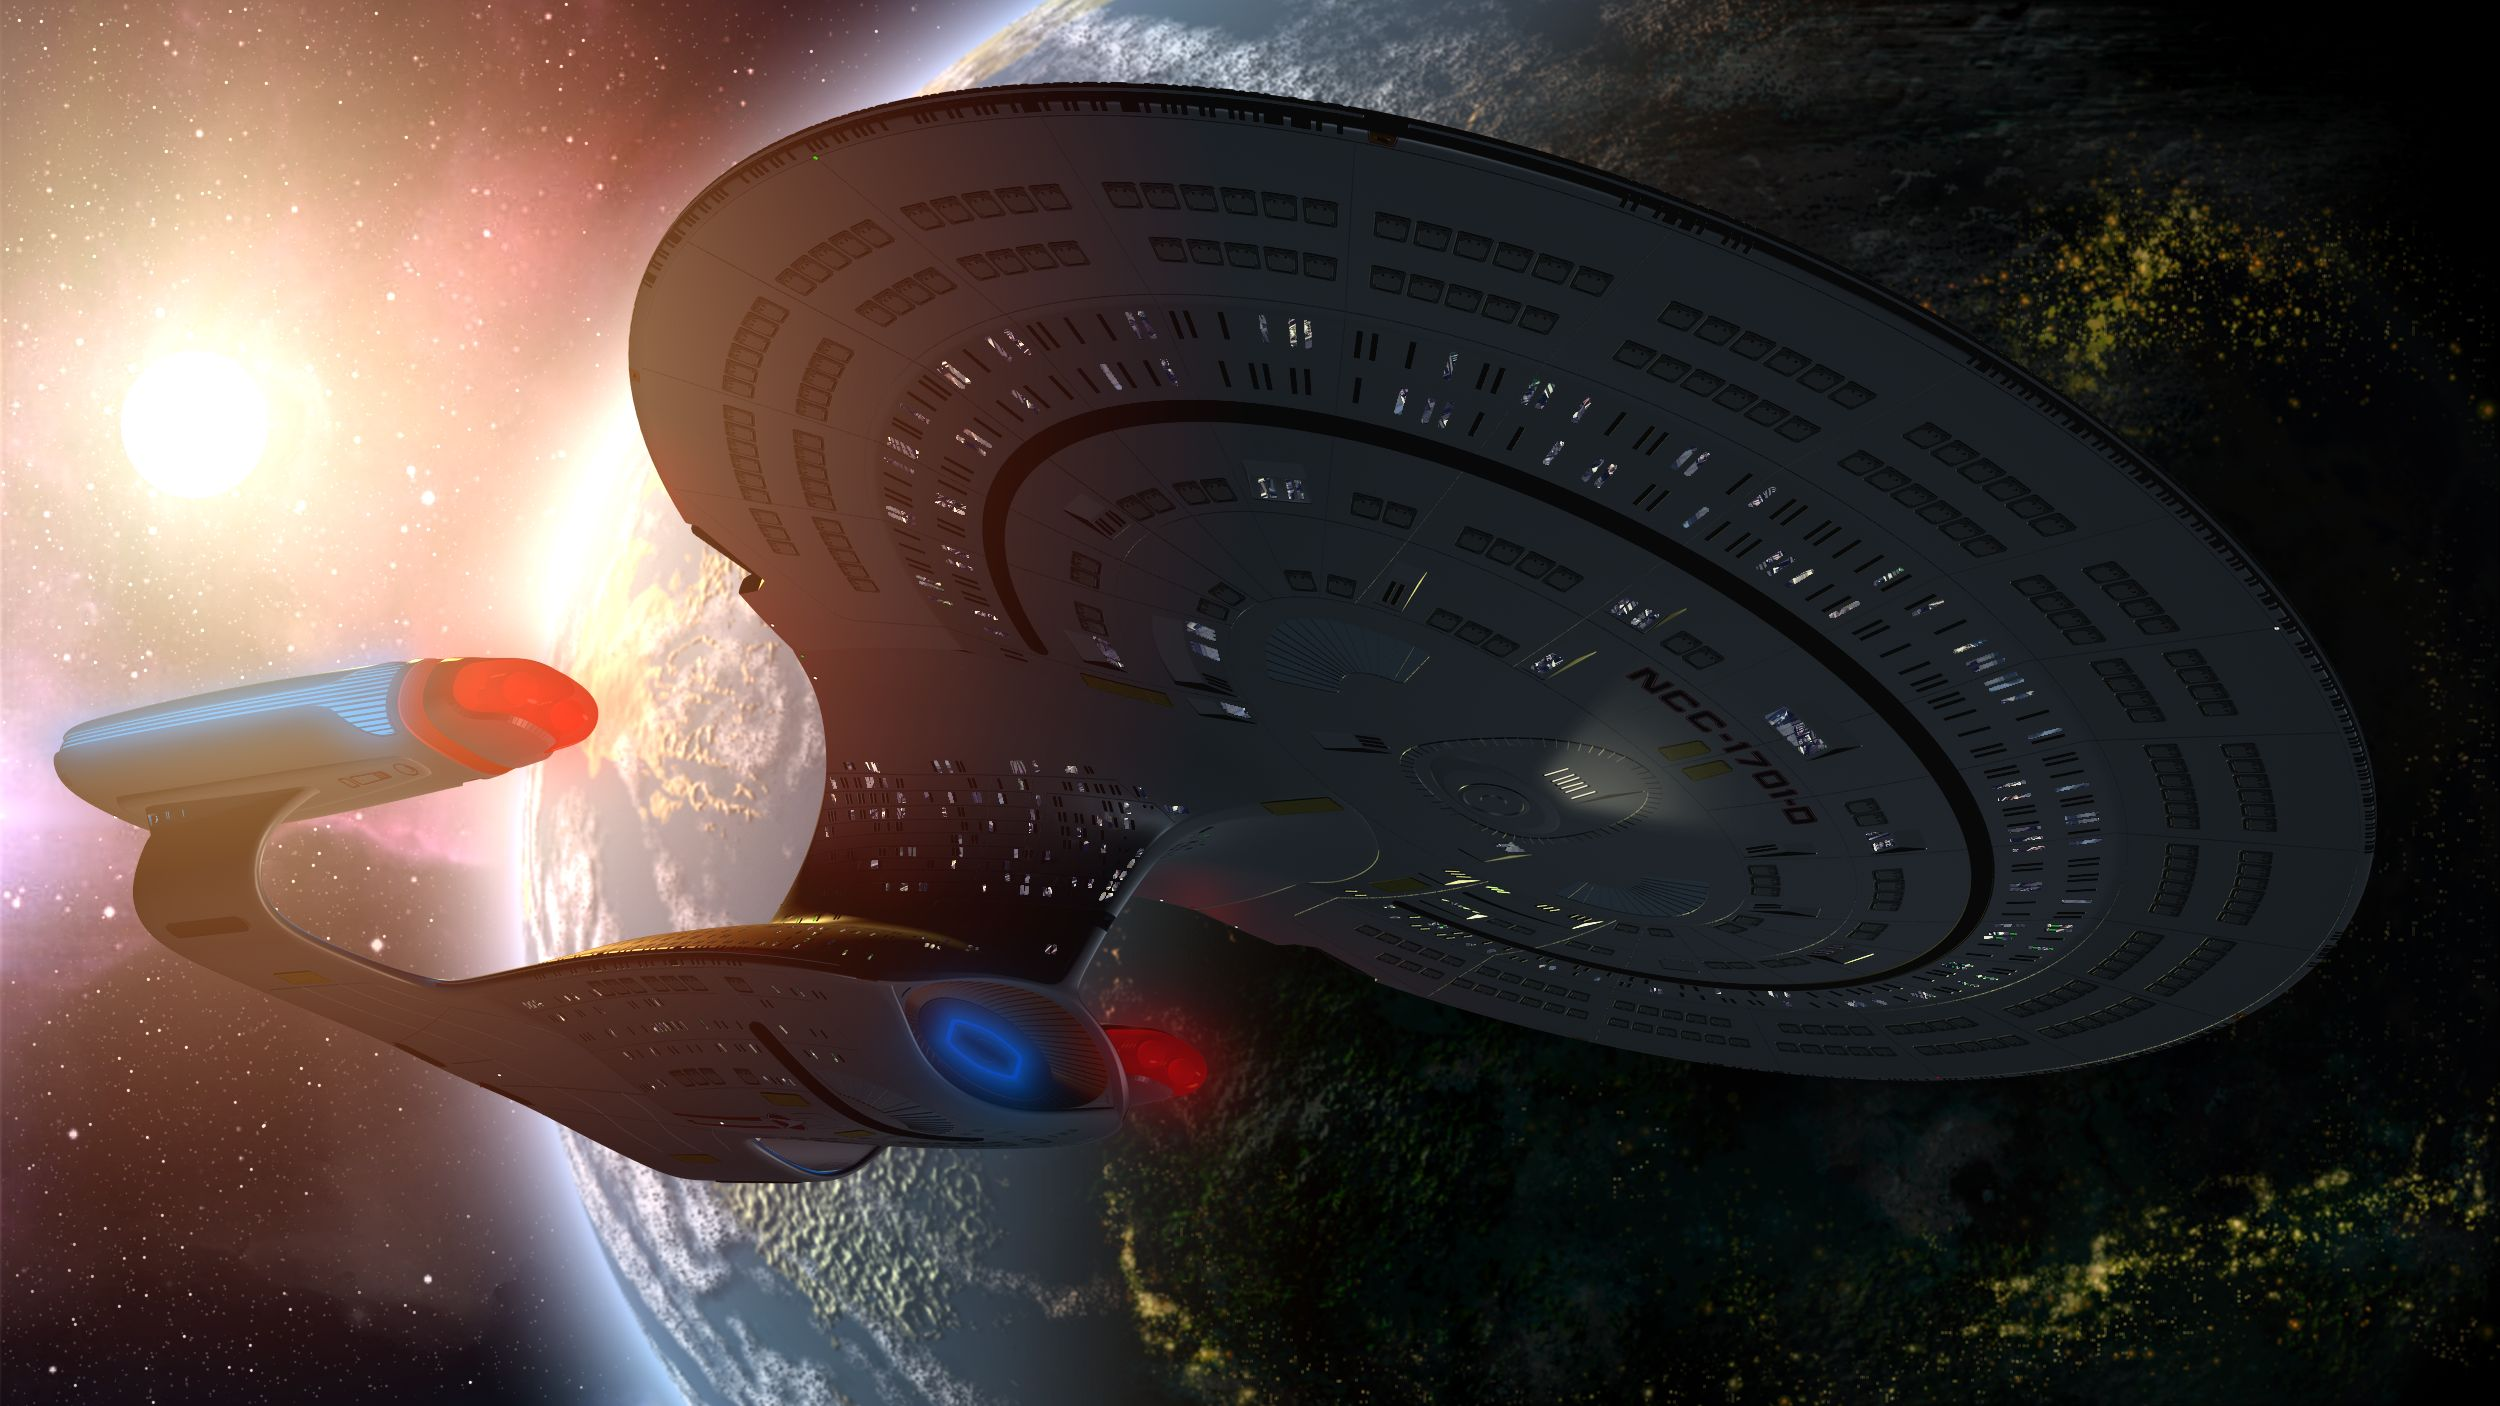 enterprise e wallpaper hd - photo #20